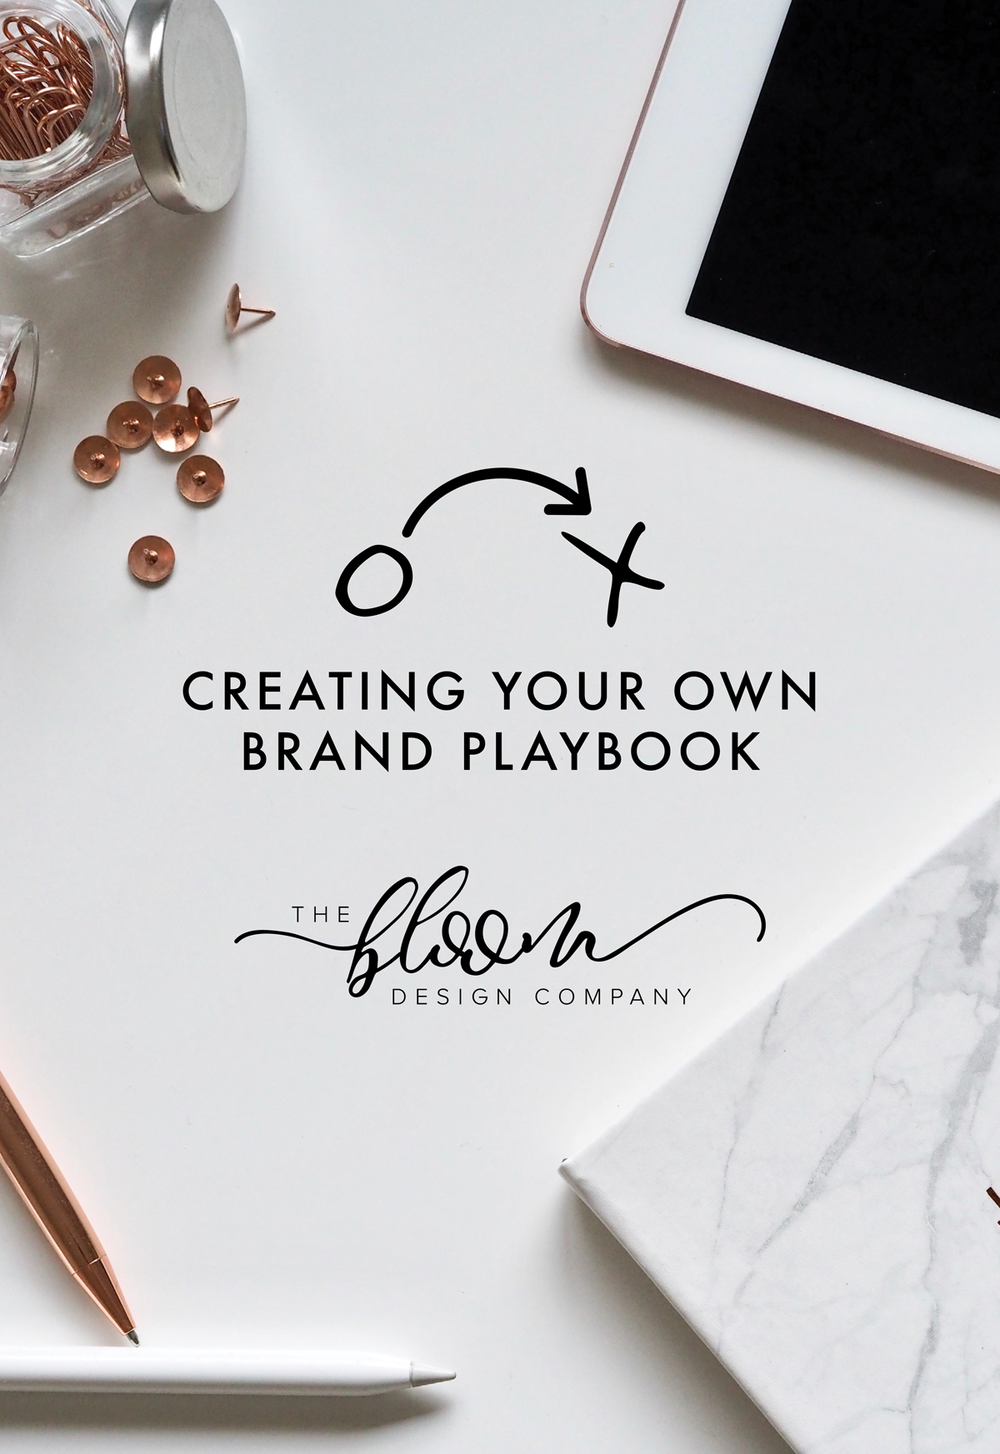 How to Create Your Own Brand Playbook Digital Download E-book including design tips and brand development and strategy resources